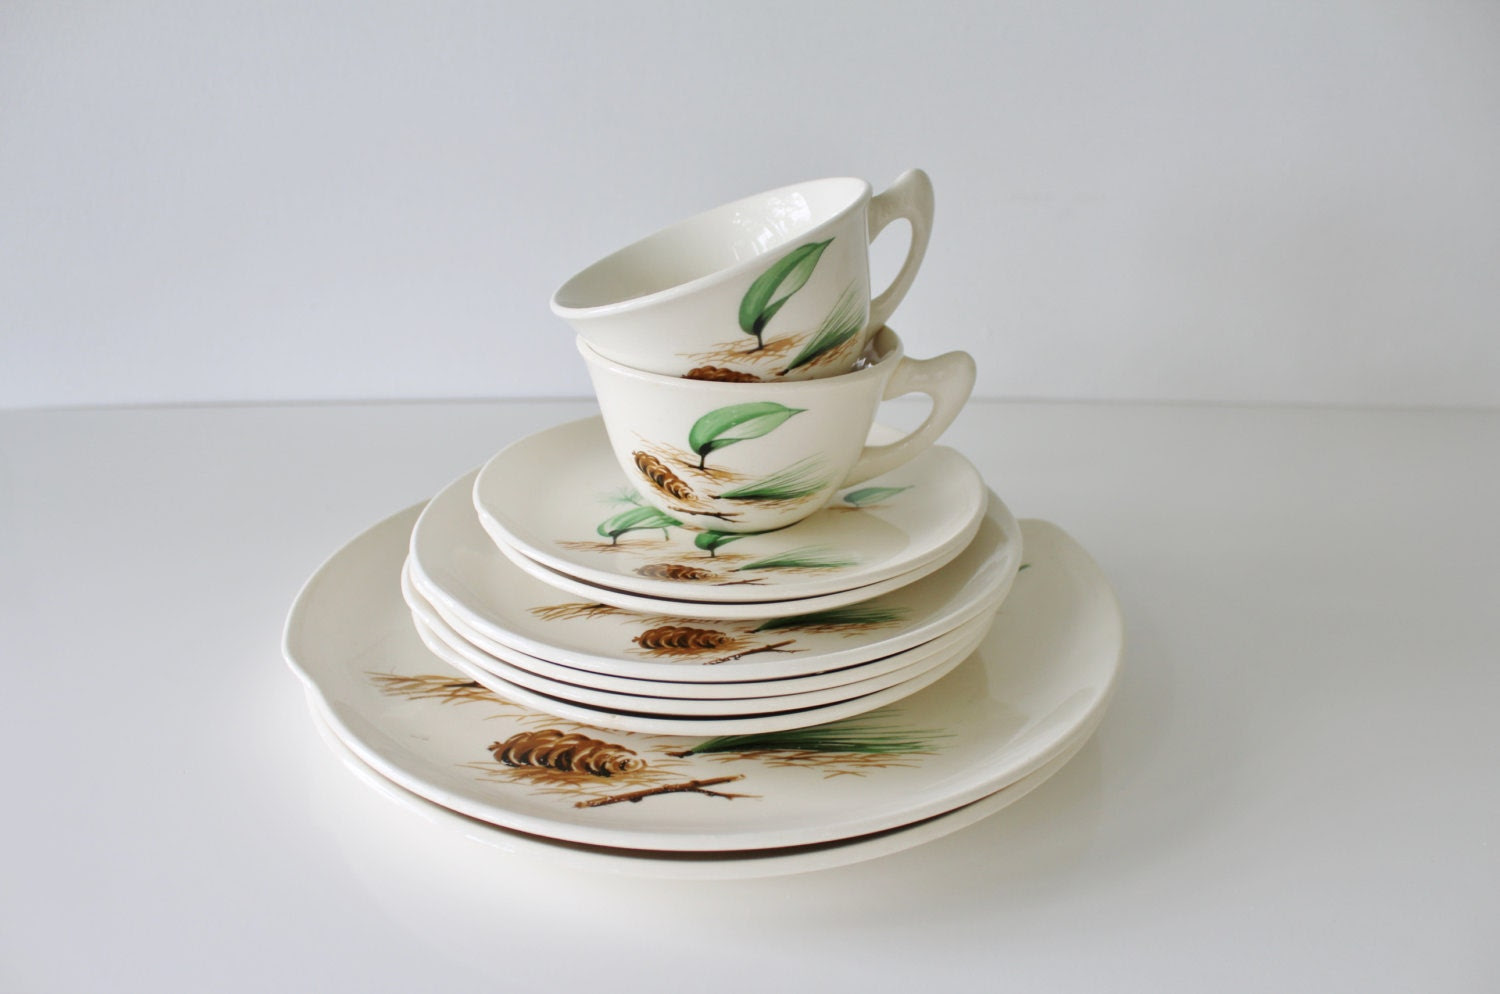 Forest Floor Dish Set - Vintage Mid Century W.S. George Dishes Half Century of Fine Dinnerware - TheVintageGang Kitchenware - Cups & Plates - TheVintageGang